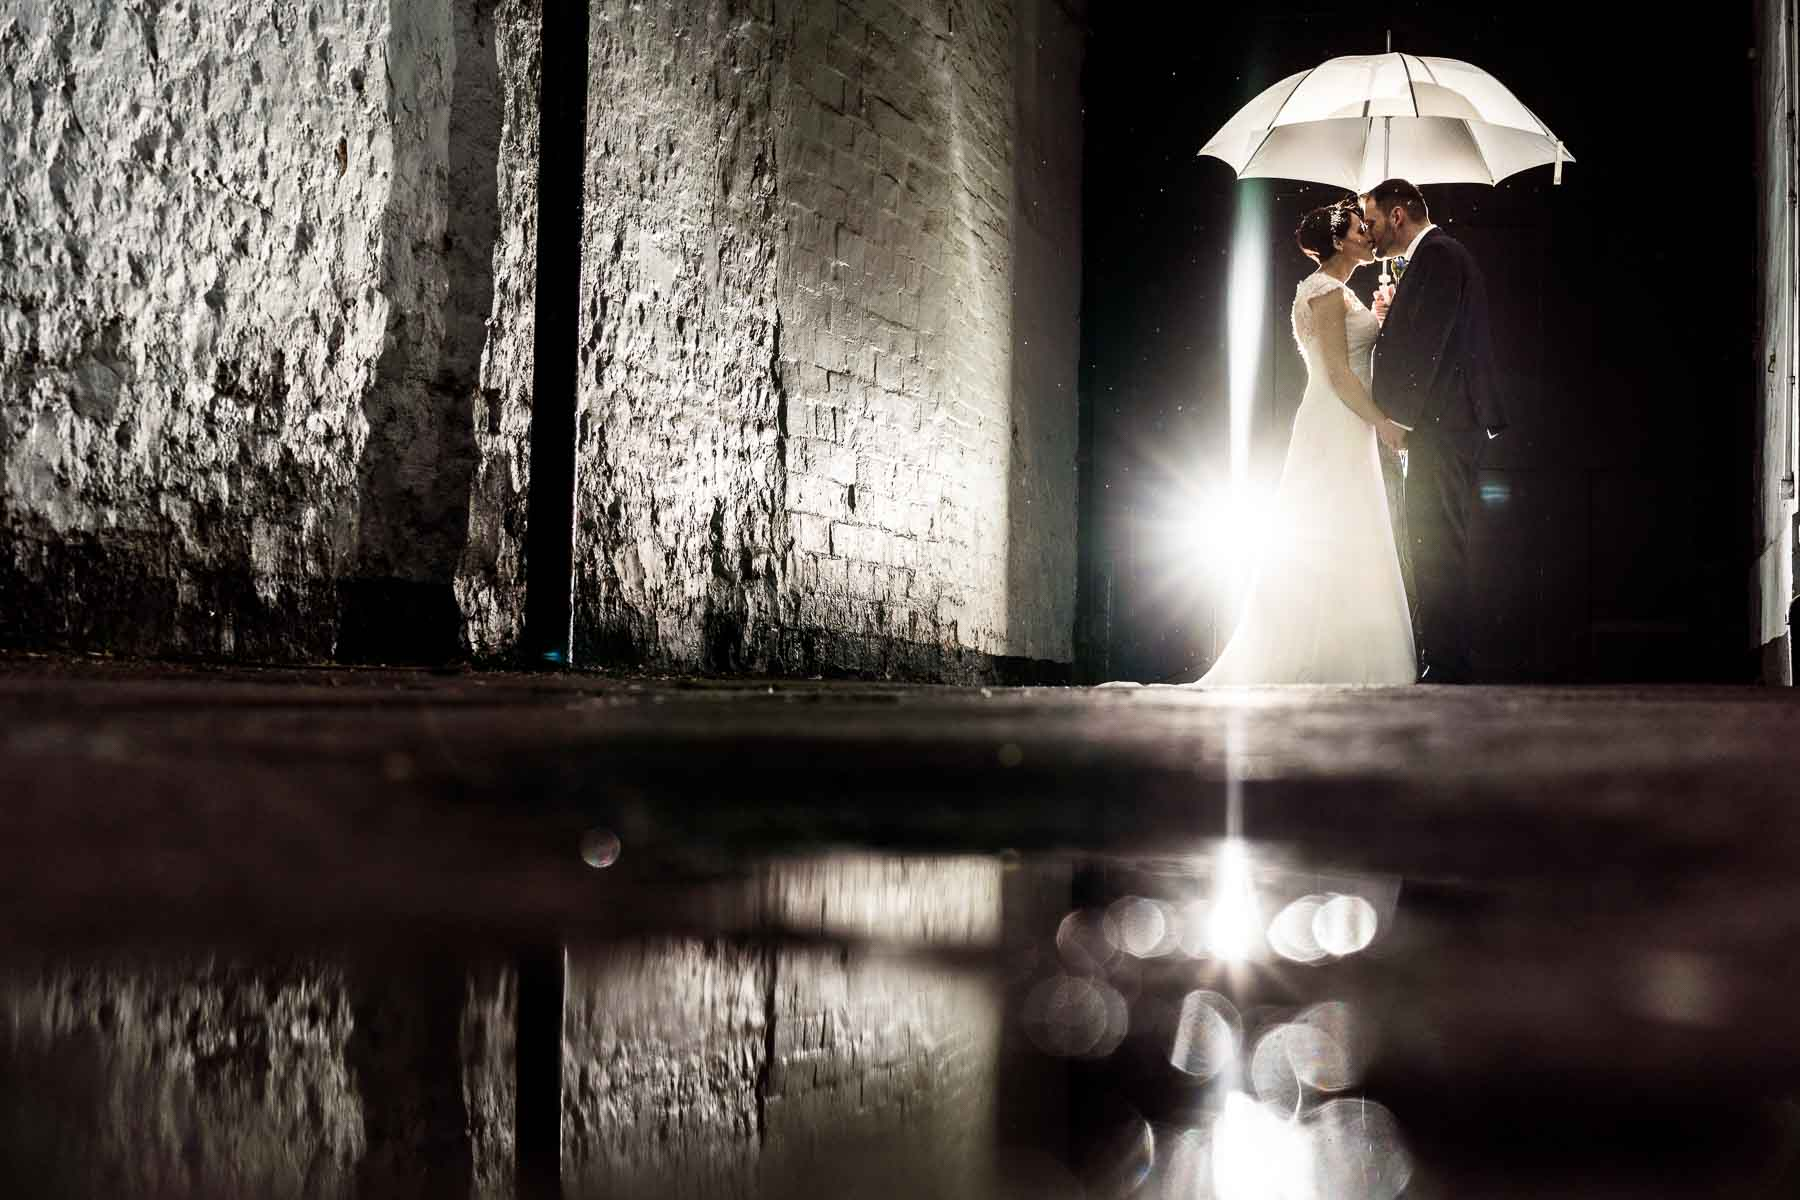 Beautiful rain and umbrella photo of the couple